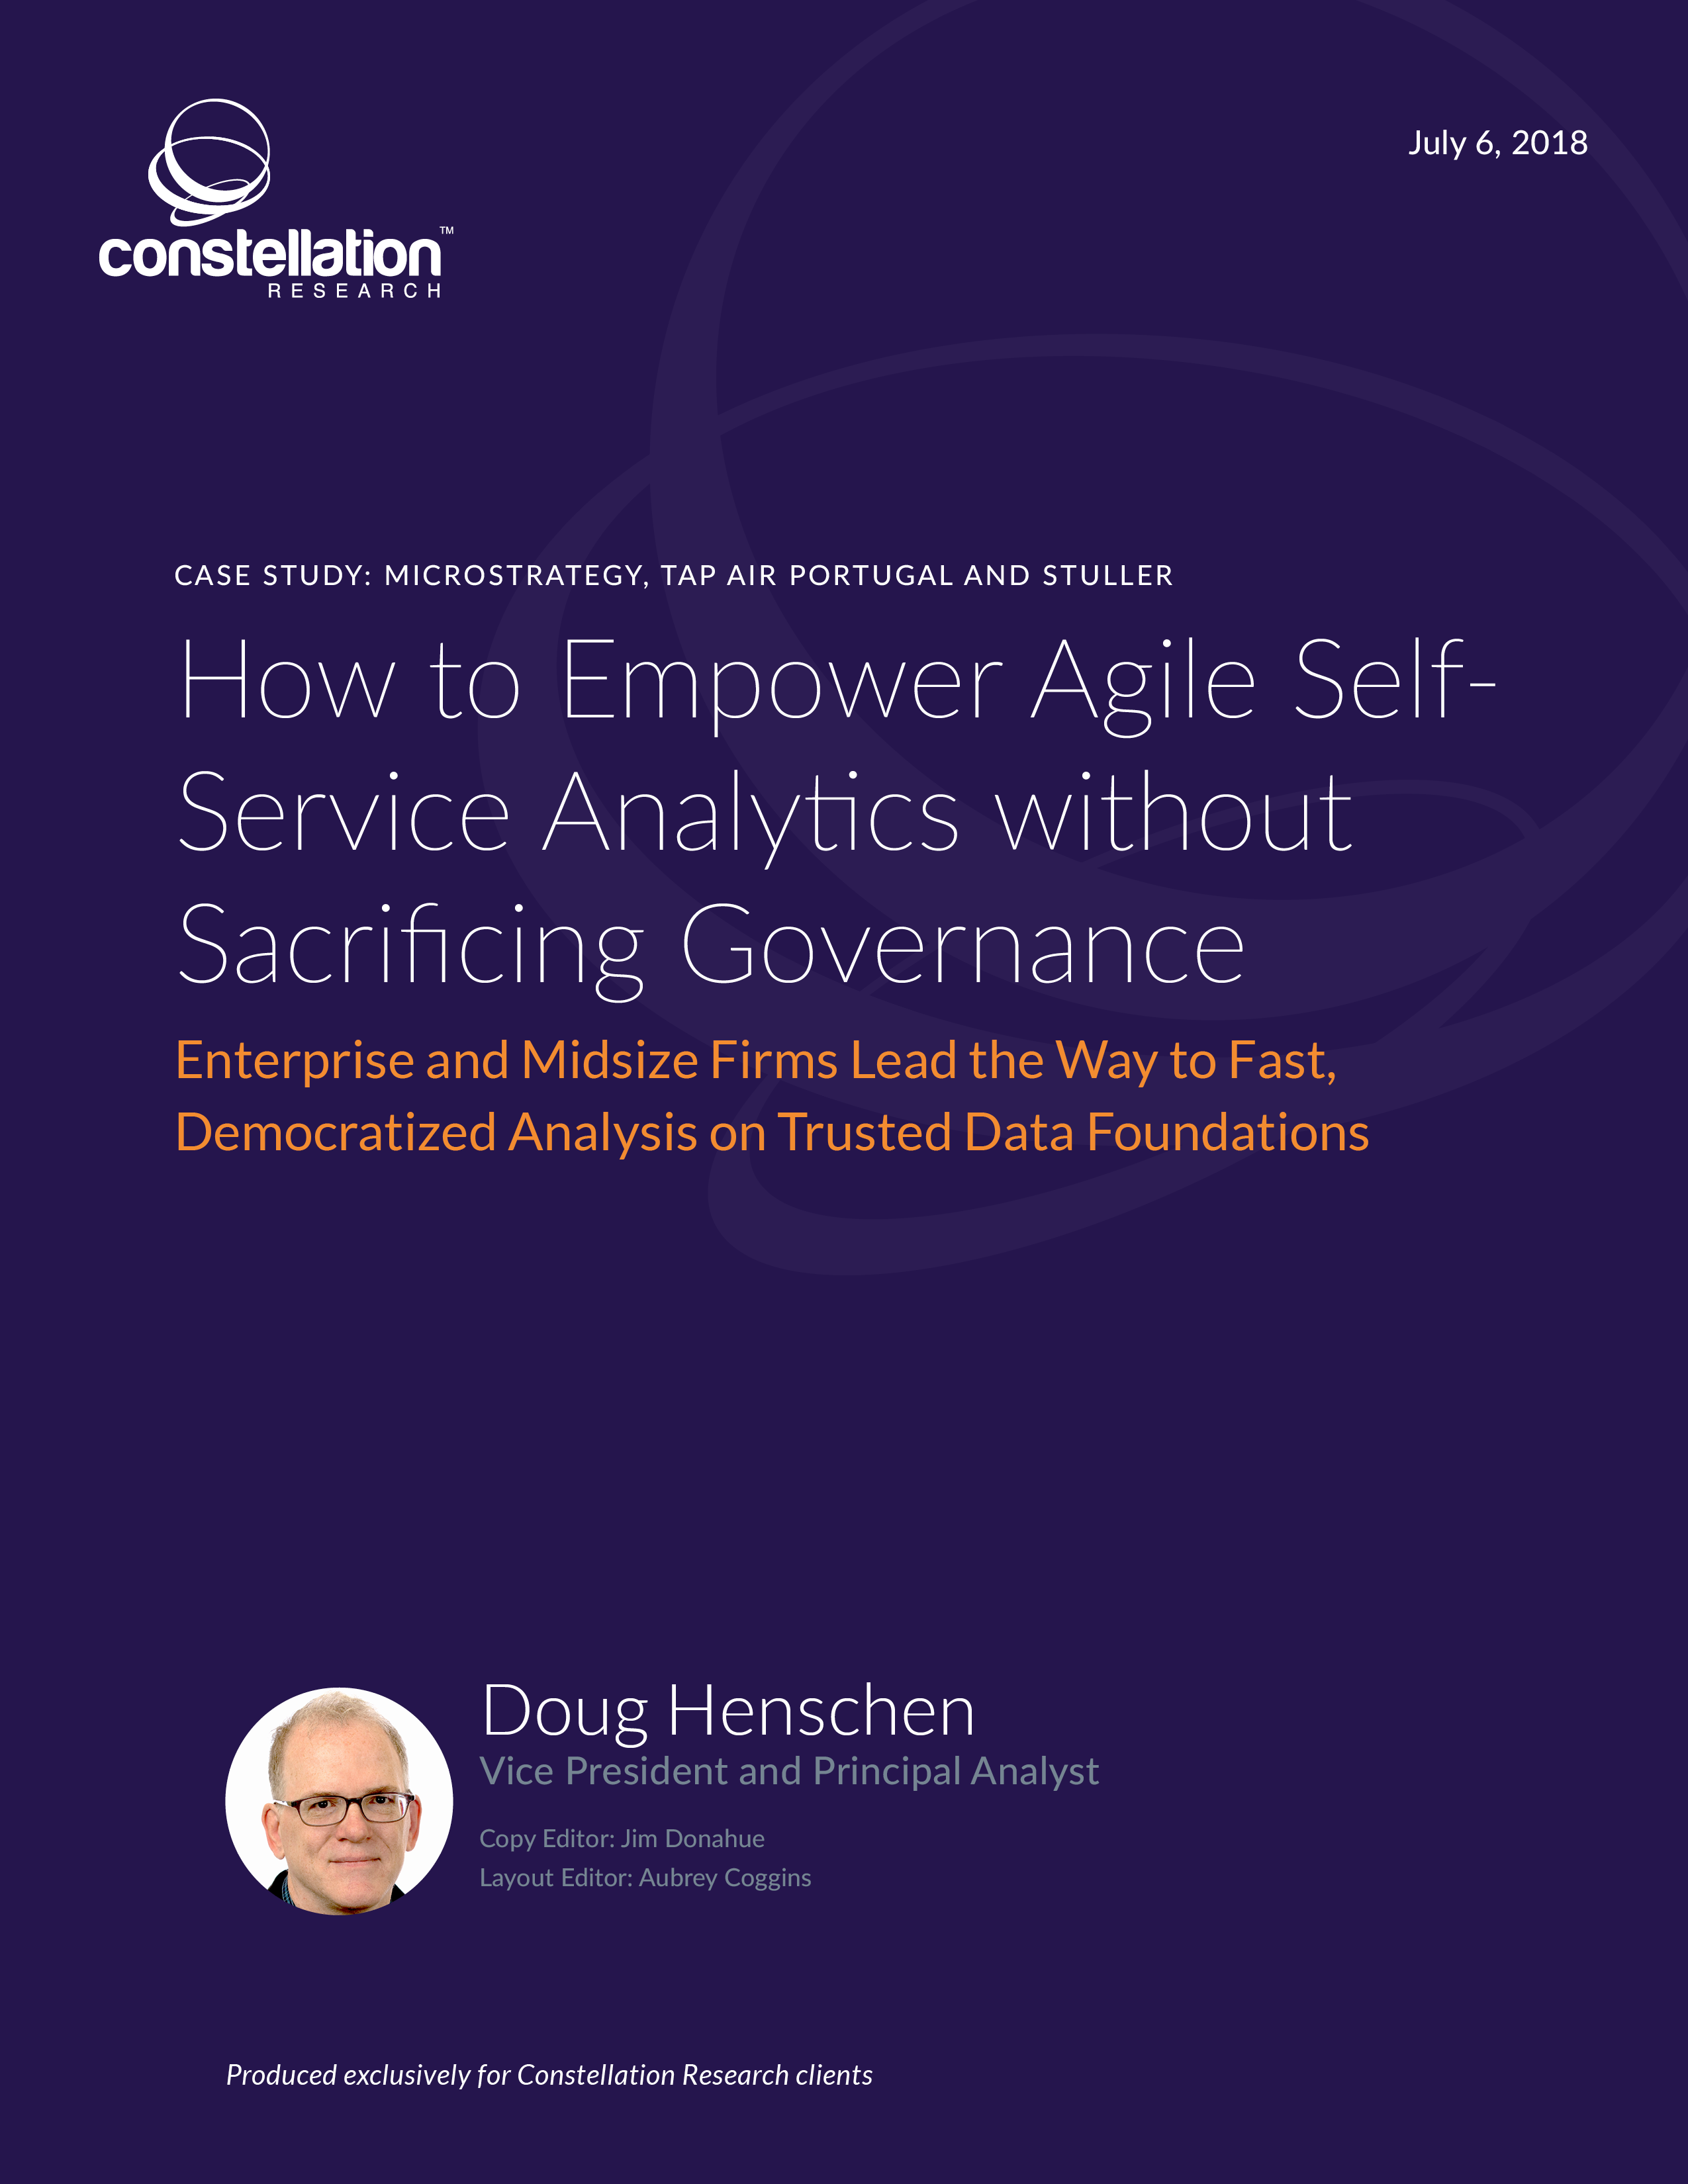 How to Empower Agile Self-Service Analytics without Sacrificing Governance